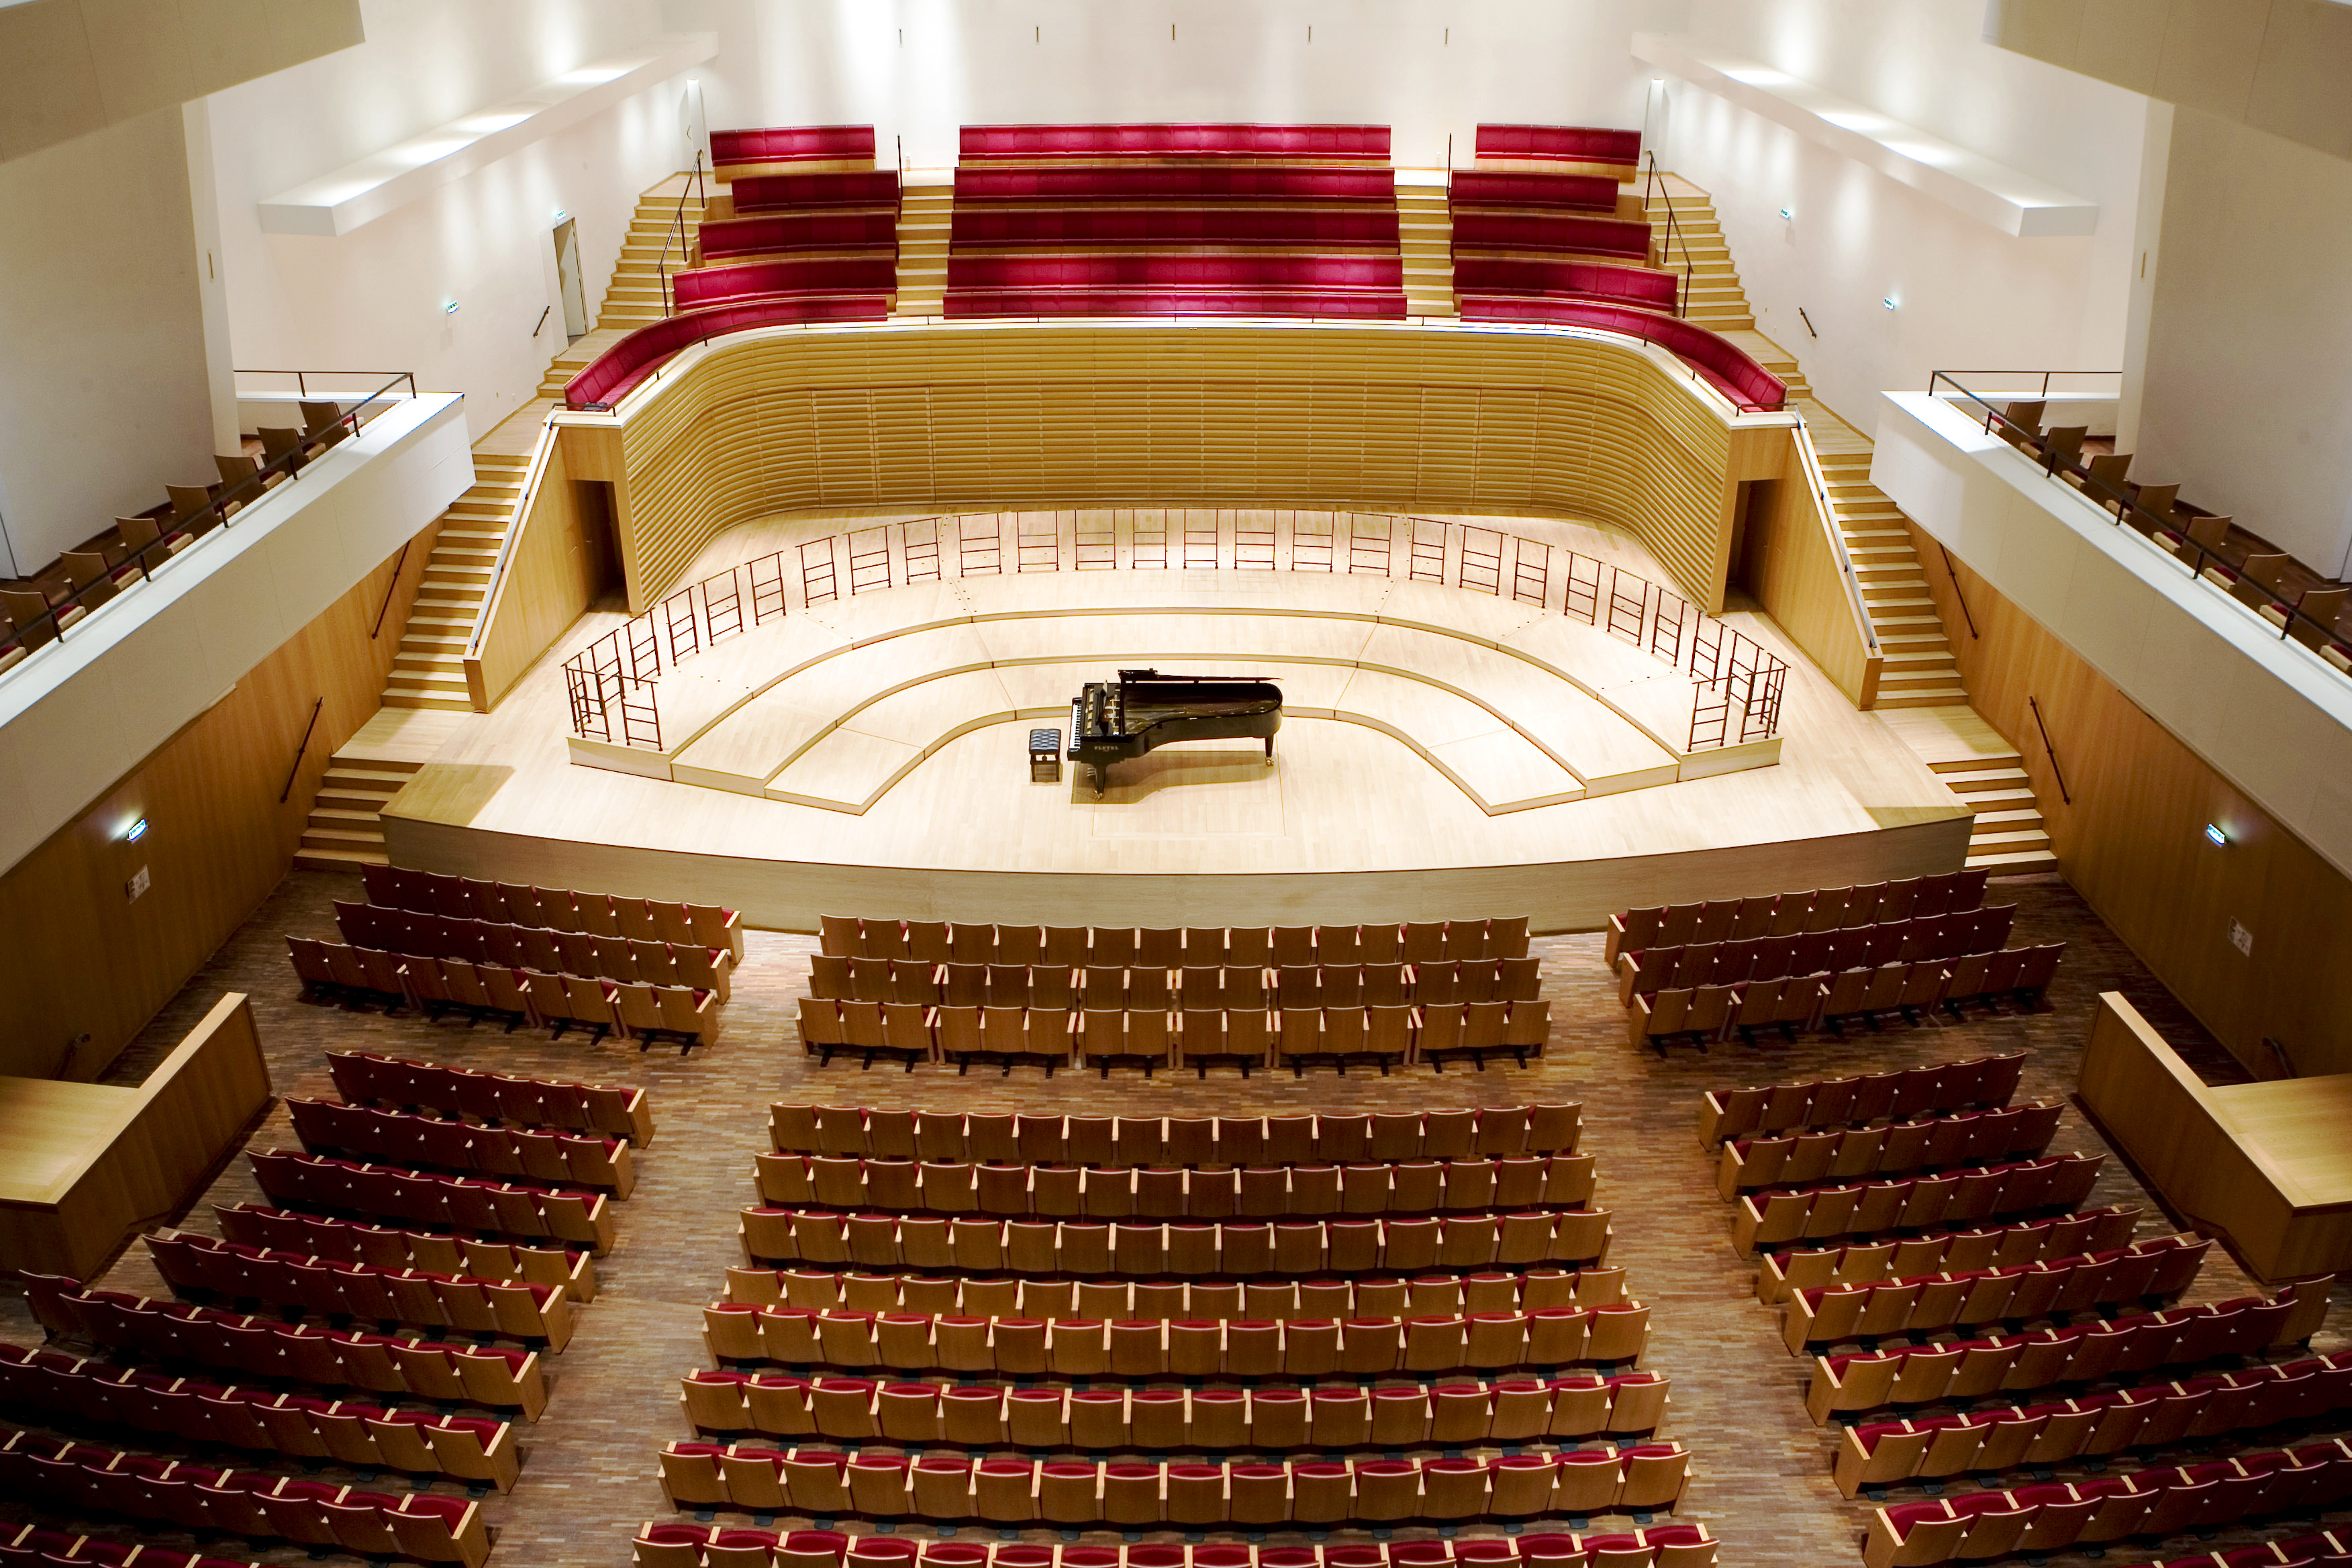 Salle Pleyel – Interview with Federico Cruz-Barney